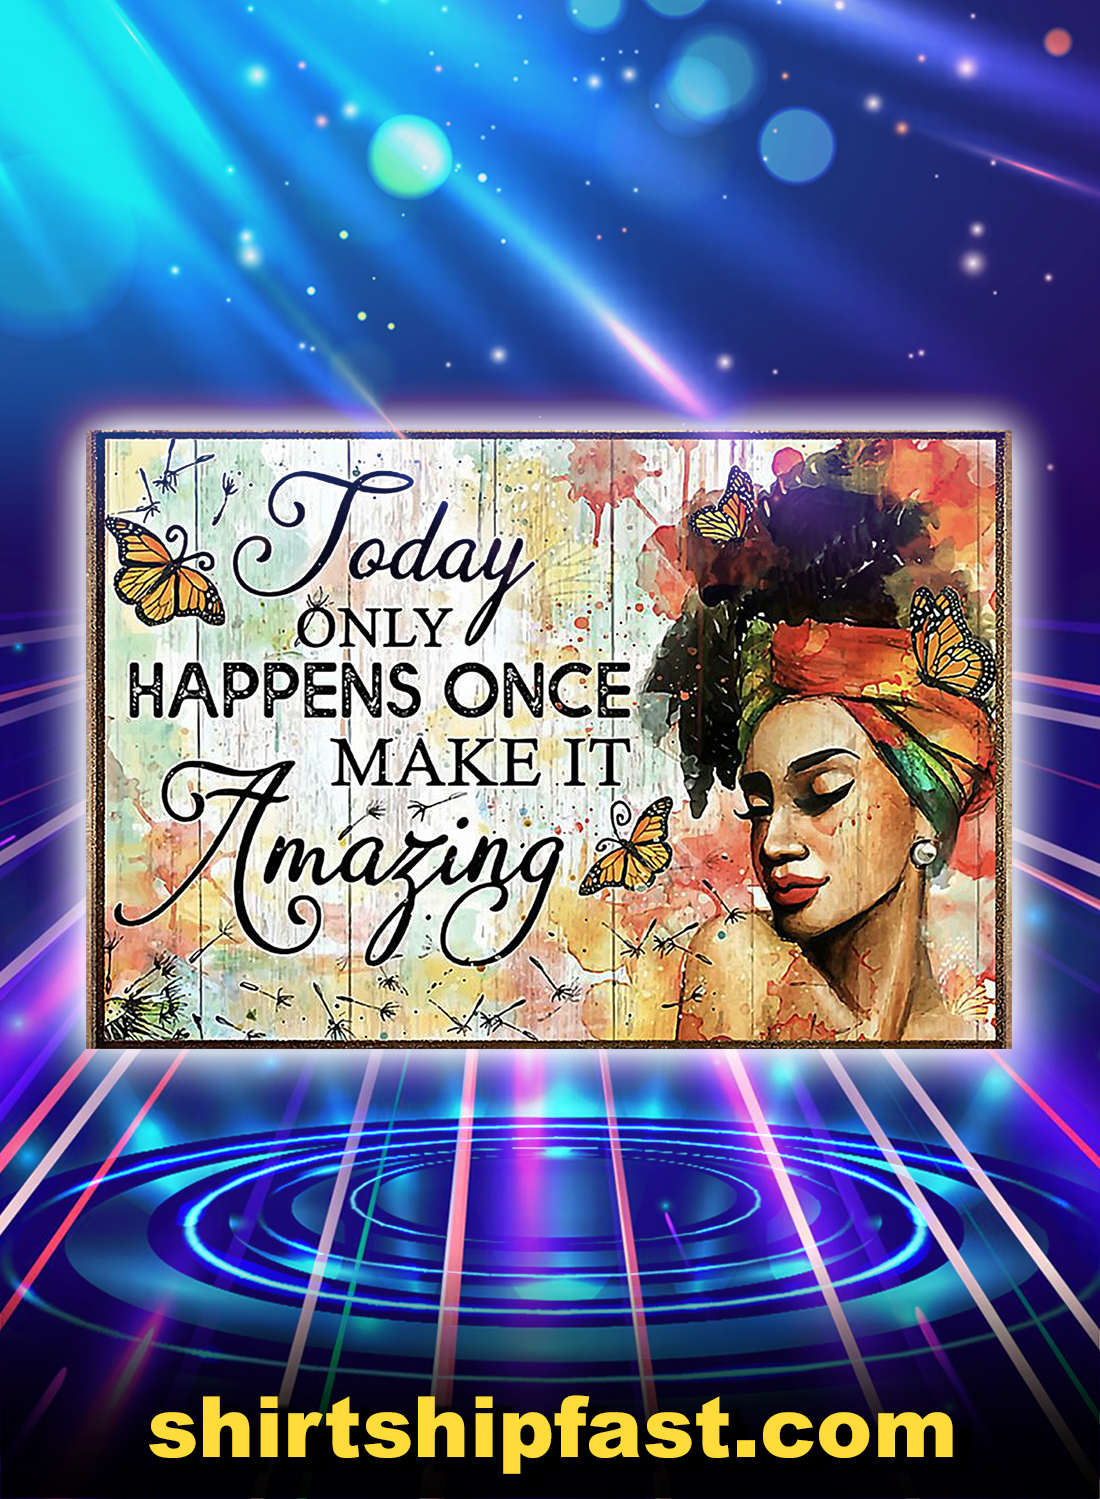 Butterfly girl today only happens once make it amazing poster - A4